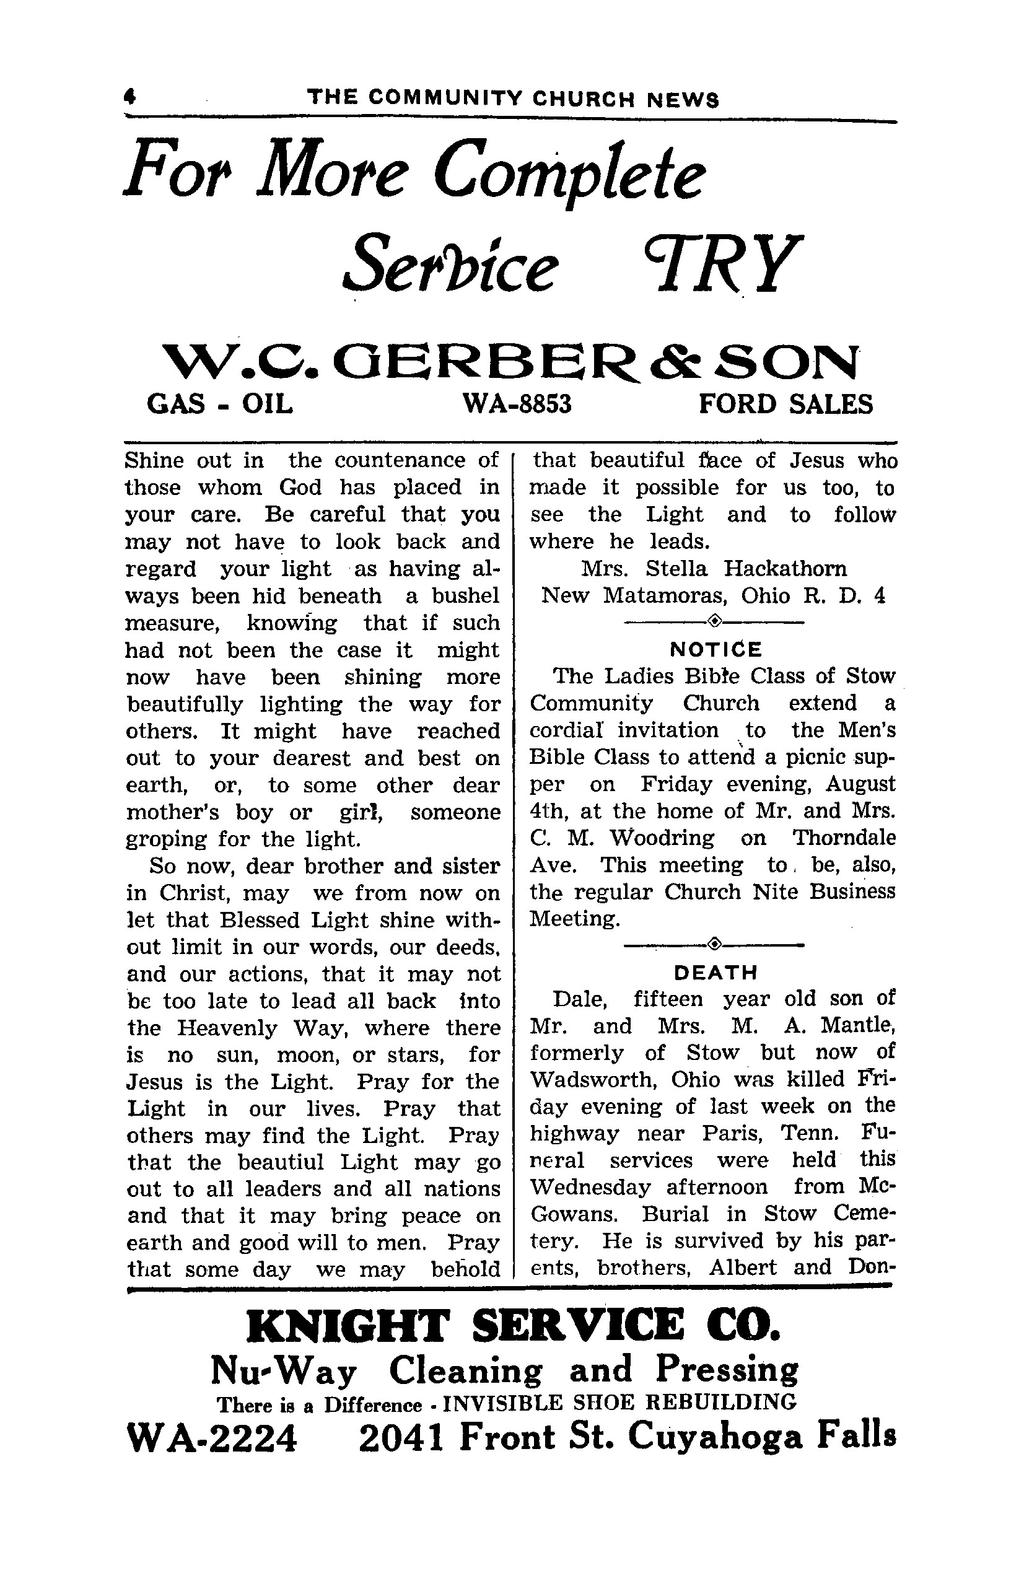 "6 THE COMMUNITY CHURCH NEWS ^ For More Complete SerUce ""TRY W.C.OERBER&SON GAS - OIL WA-8853 FORD SALES Shine out in the countenance of those whom God has placed in your care."